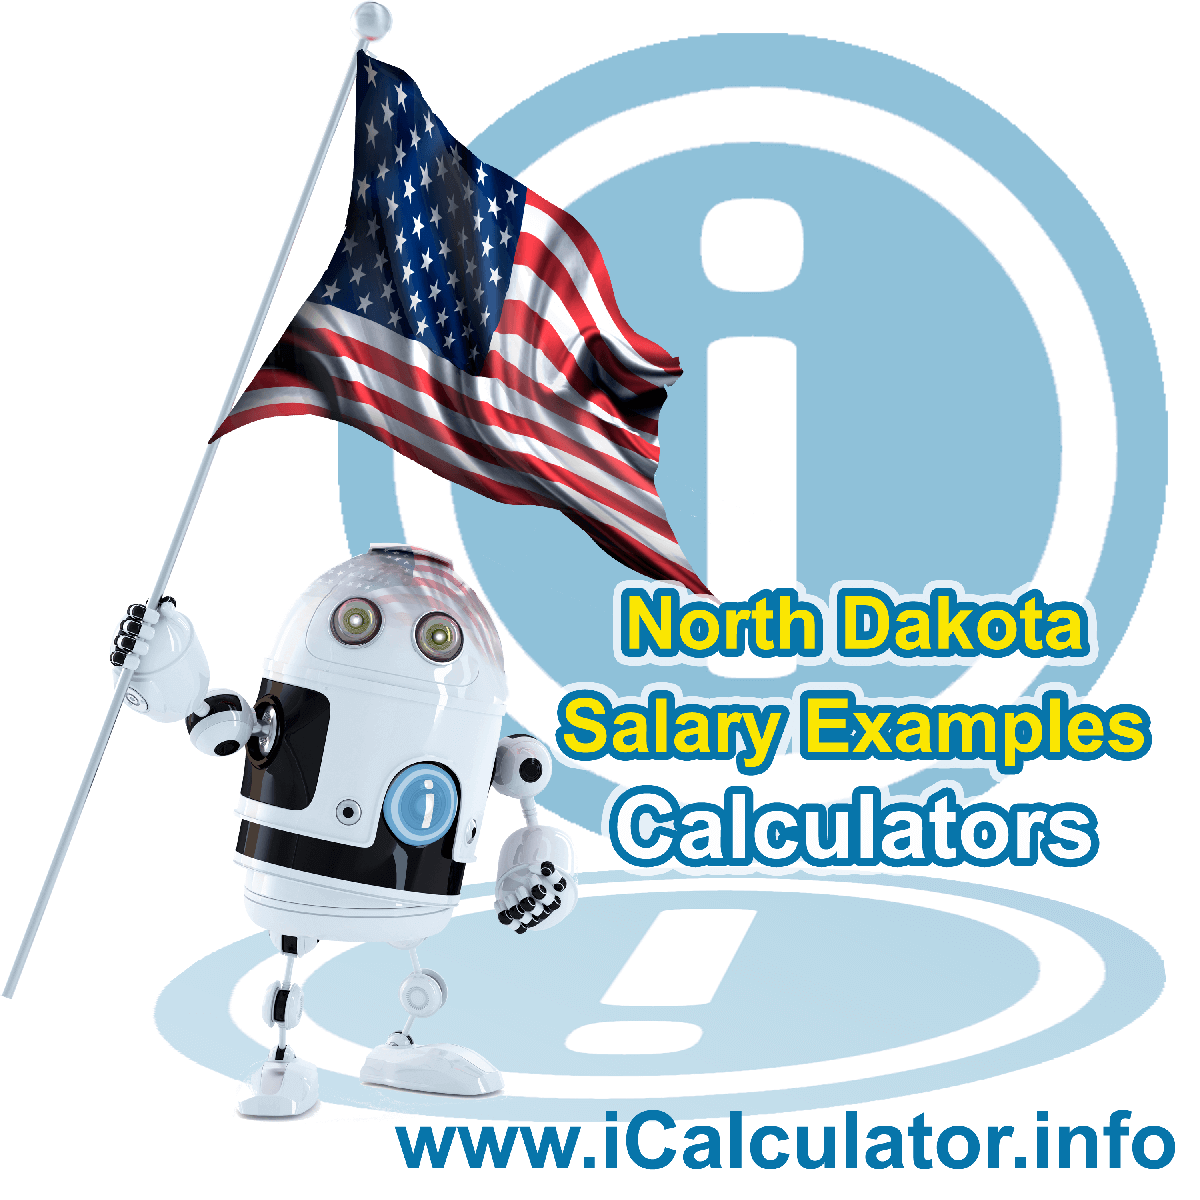 North Dakota Salary Example for $70,000.00 in 2020 | iCalculator | $70,000.00 salary example for employee and employer paying North Dakota State tincome taxes. Detailed salary after tax calculation including North Dakota State Tax, Federal State Tax, Medicare Deductions, Social Security, Capital Gains and other income tax and salary deductions complete with supporting North Dakota state tax tables